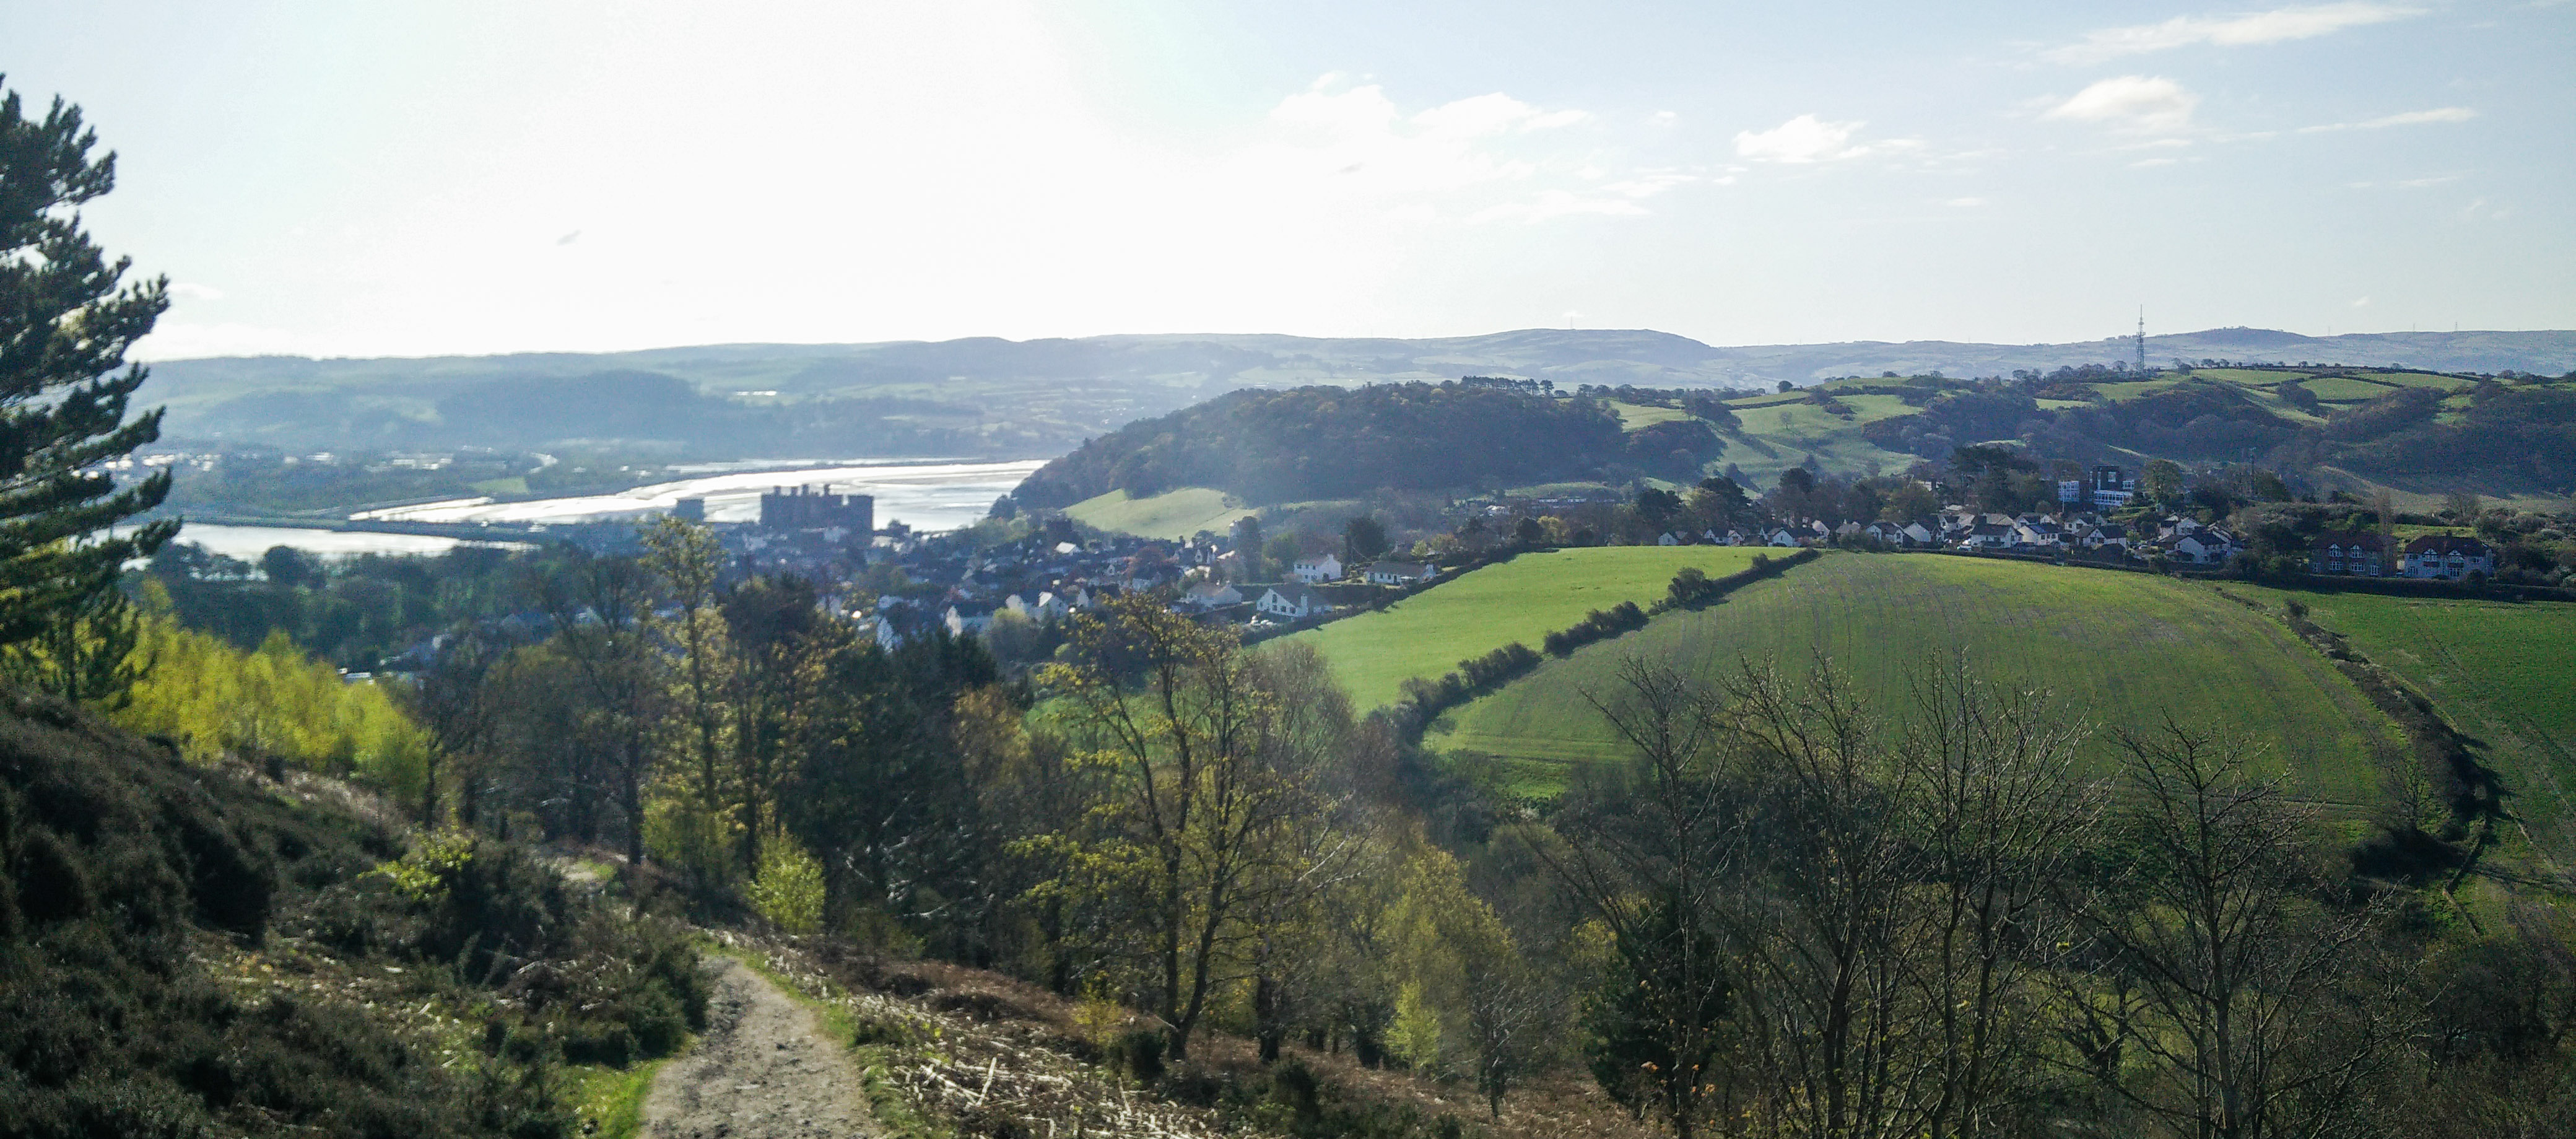 Conwy valley from the mountain